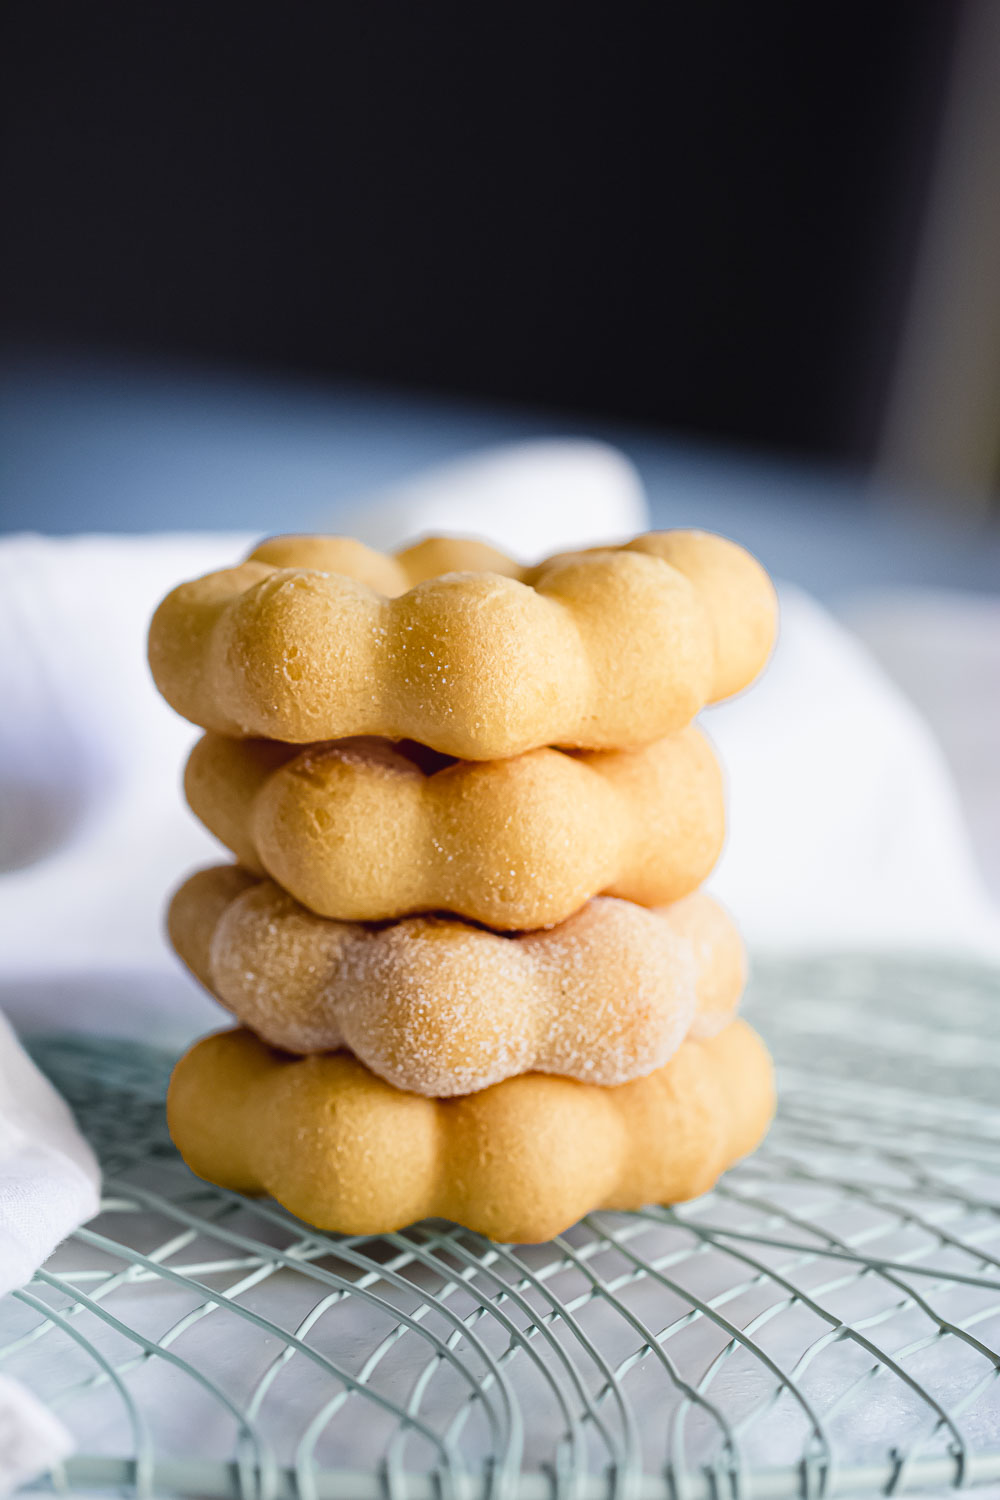 Mochi Donut. These are super delicious and highly addictive! For those of you yet to be introduced to mochi, allow me to lead you to this new journey that will make your taste buds dance.